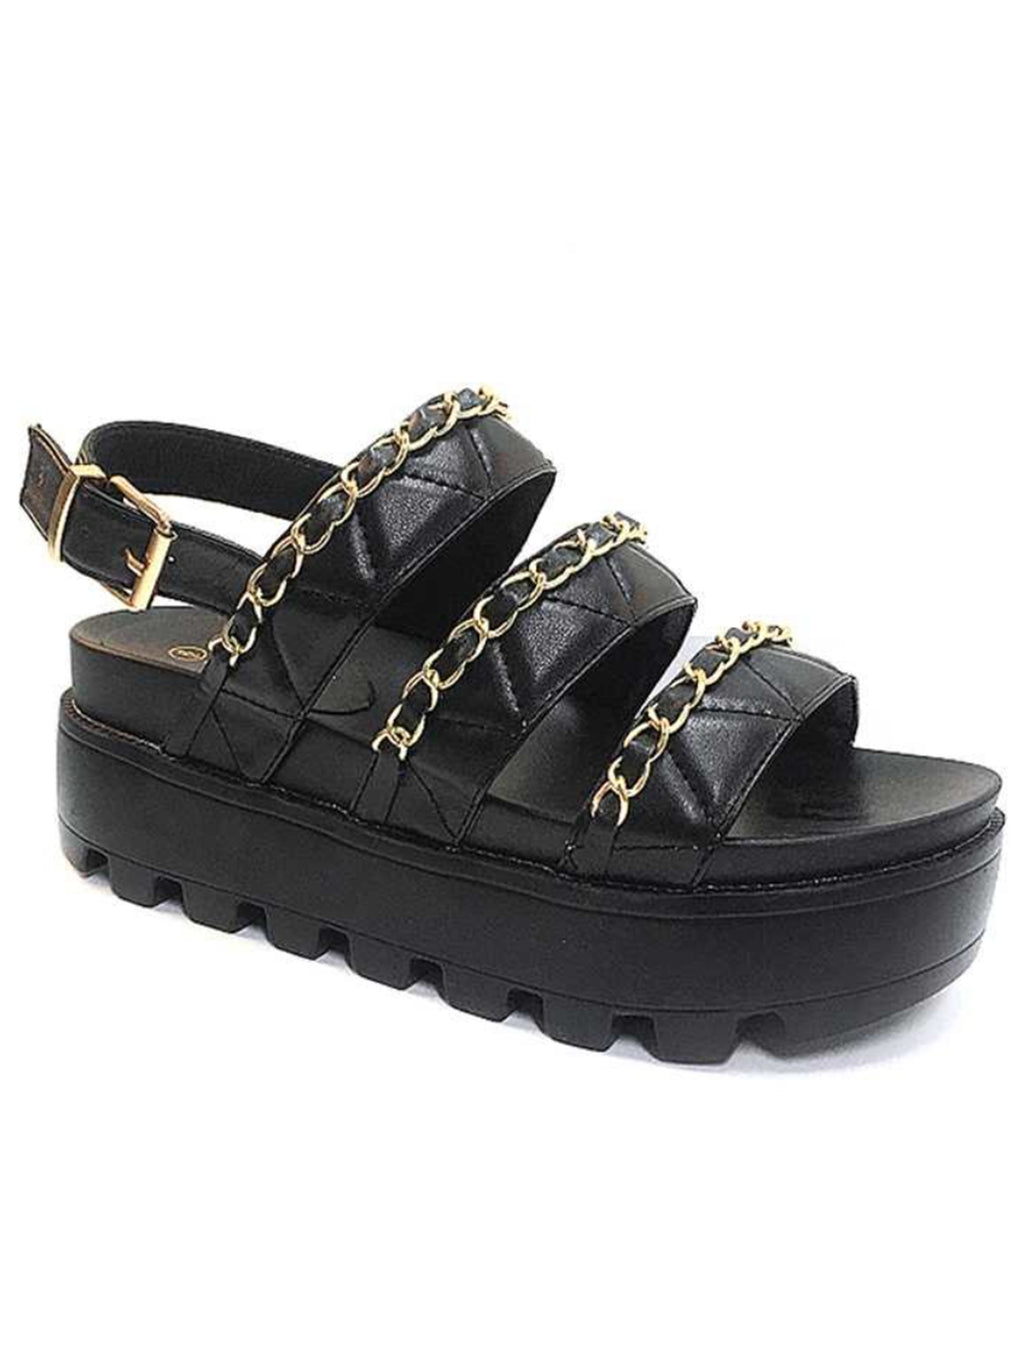 Want You Back Sandals: Black